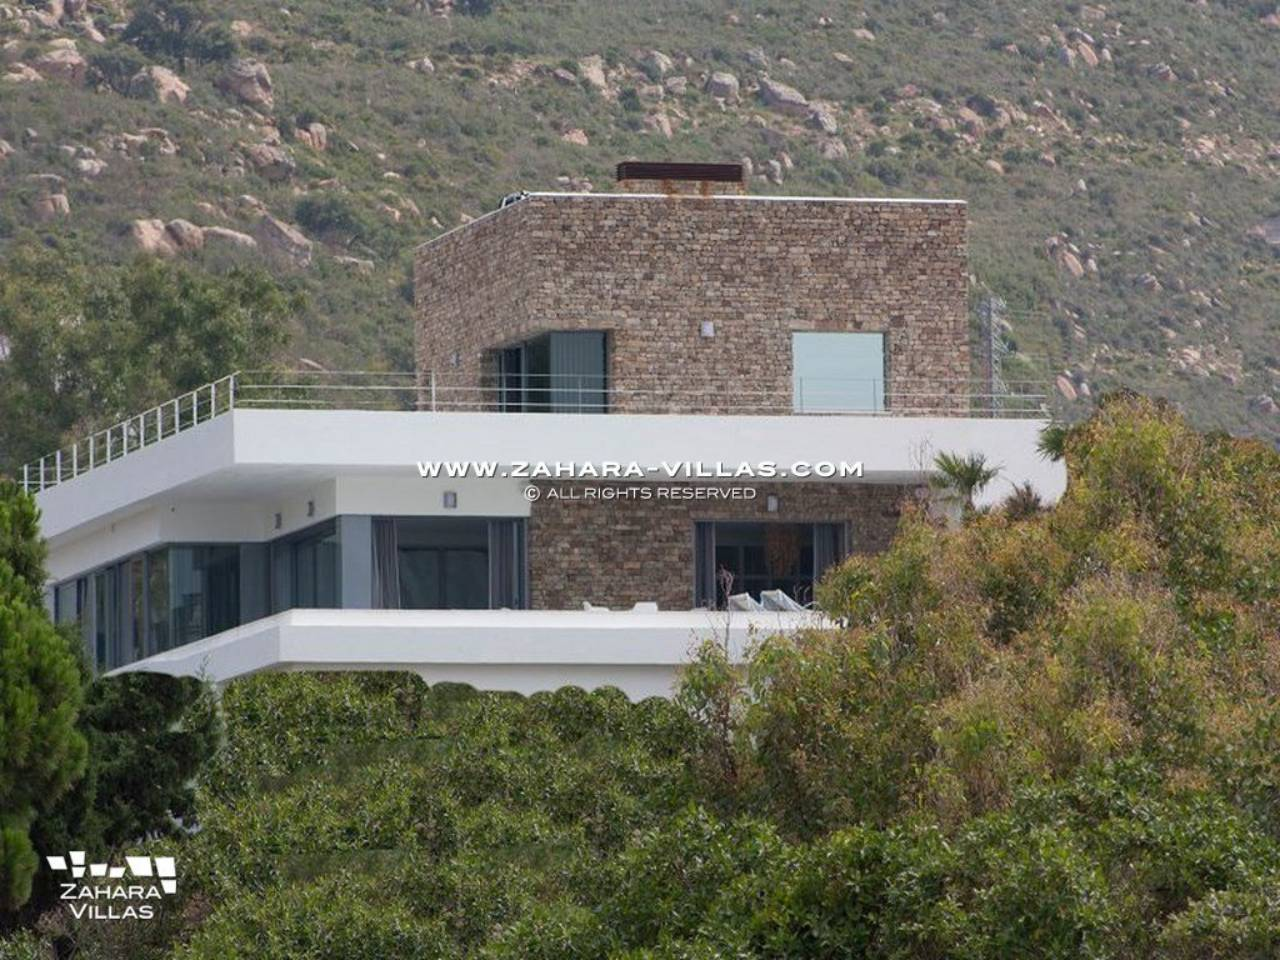 Imagen 5 de Wonderful Villa for sale with sea views in the beach Los Alemanes